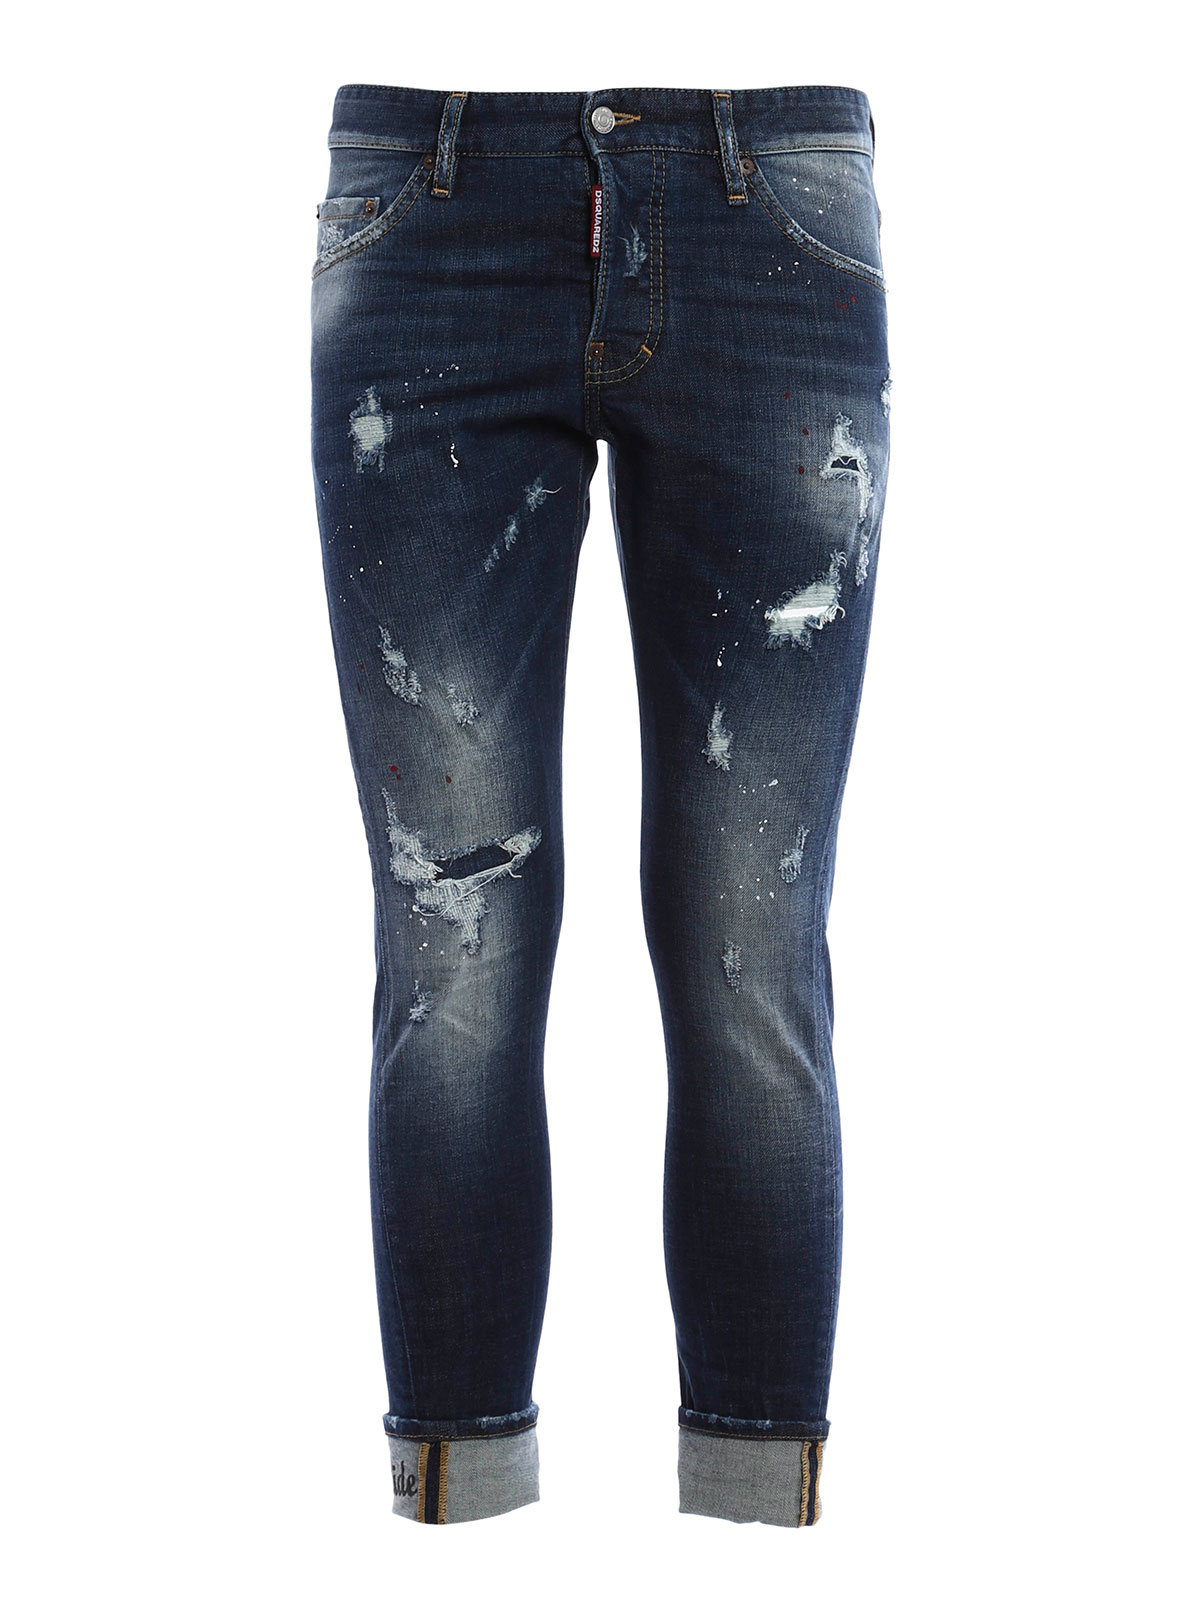 The Best Skinny Jeans for Men. A well-stocked wardrobe isn't complete without a few variations of jean styles and colours. For us, black skinny jeans come top of the list, with a good fitting pair of navy skinnies close behind. Black is probably the most popular style to go for because of their versatility.